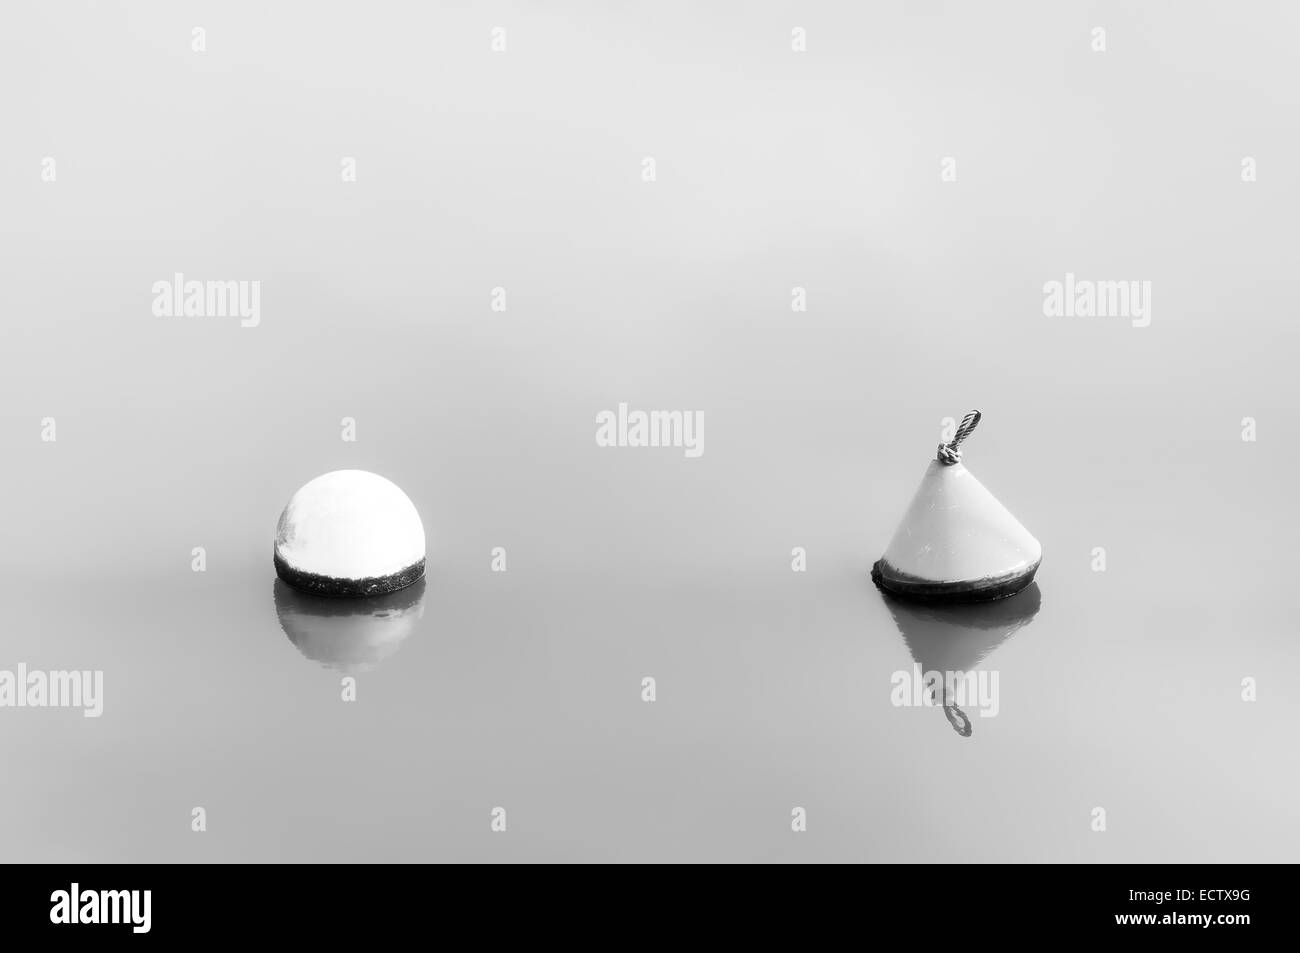 Difference concept. buoys floating on water. Black and white - Stock Image